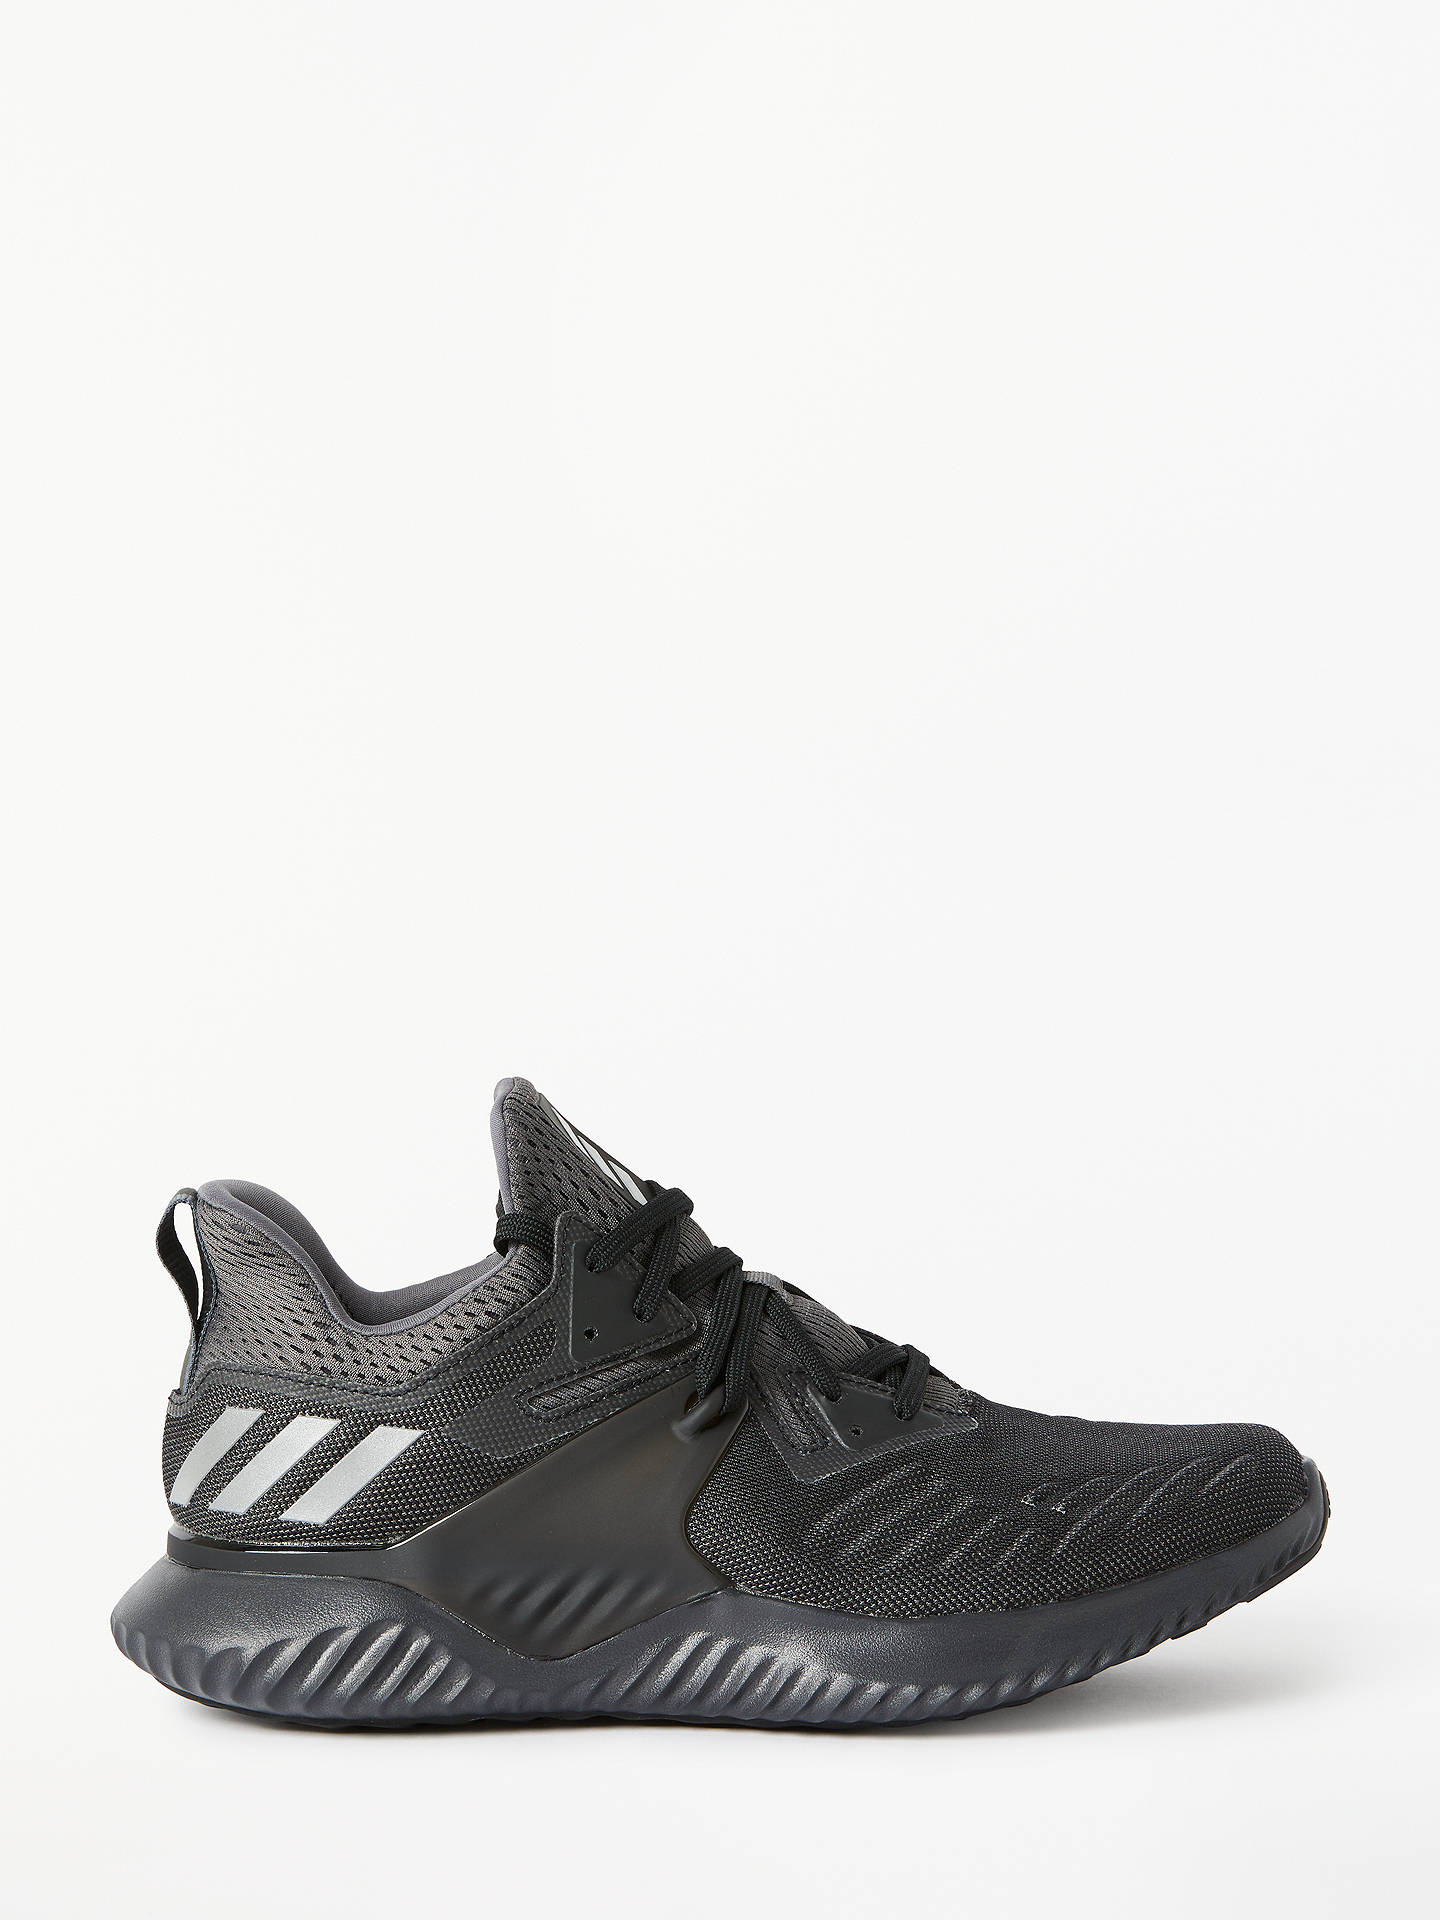 timeless design 62398 b806d Buyadidas Alphabounce Beyond 2.0 Men s Running Shoes, Core Black Carbon, 7  Online at ...